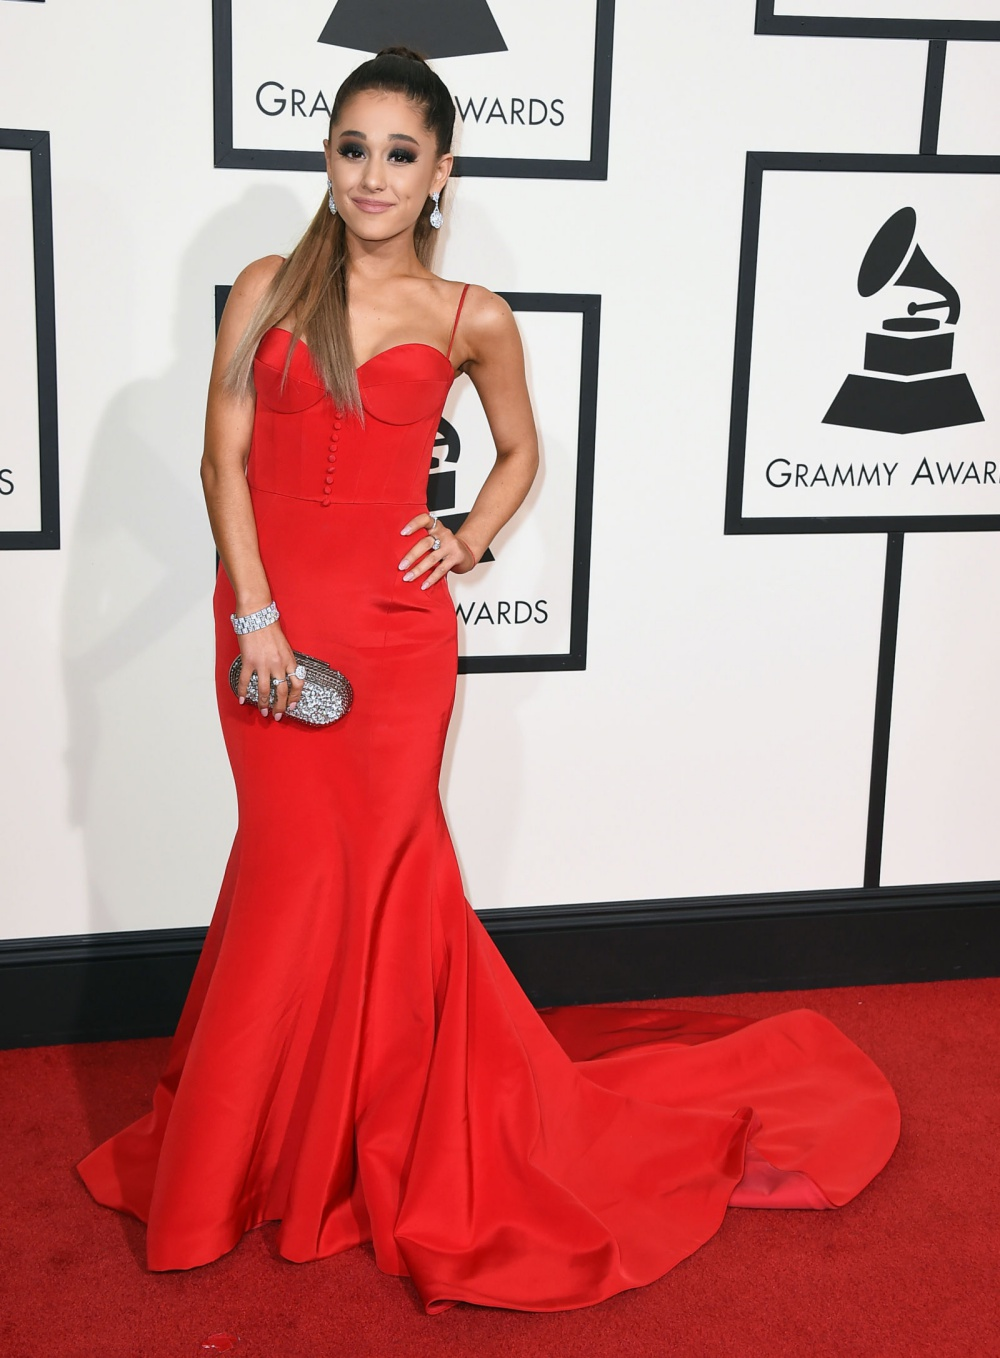 Ariana Grande Grammys 2016 Best Dressed Celebrities